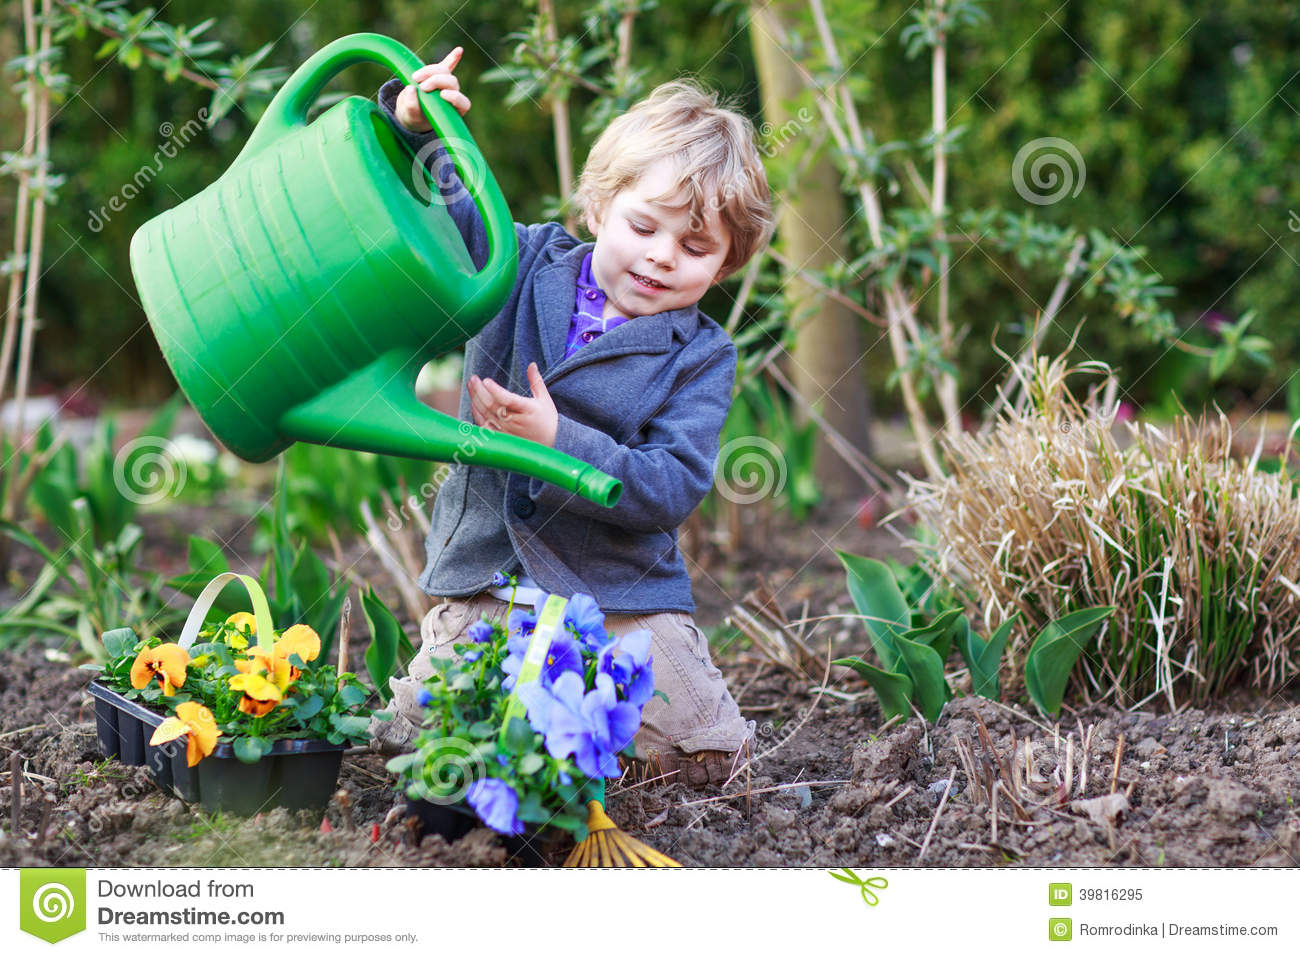 Boy gardening and planting vegetable plants and flowers in garden